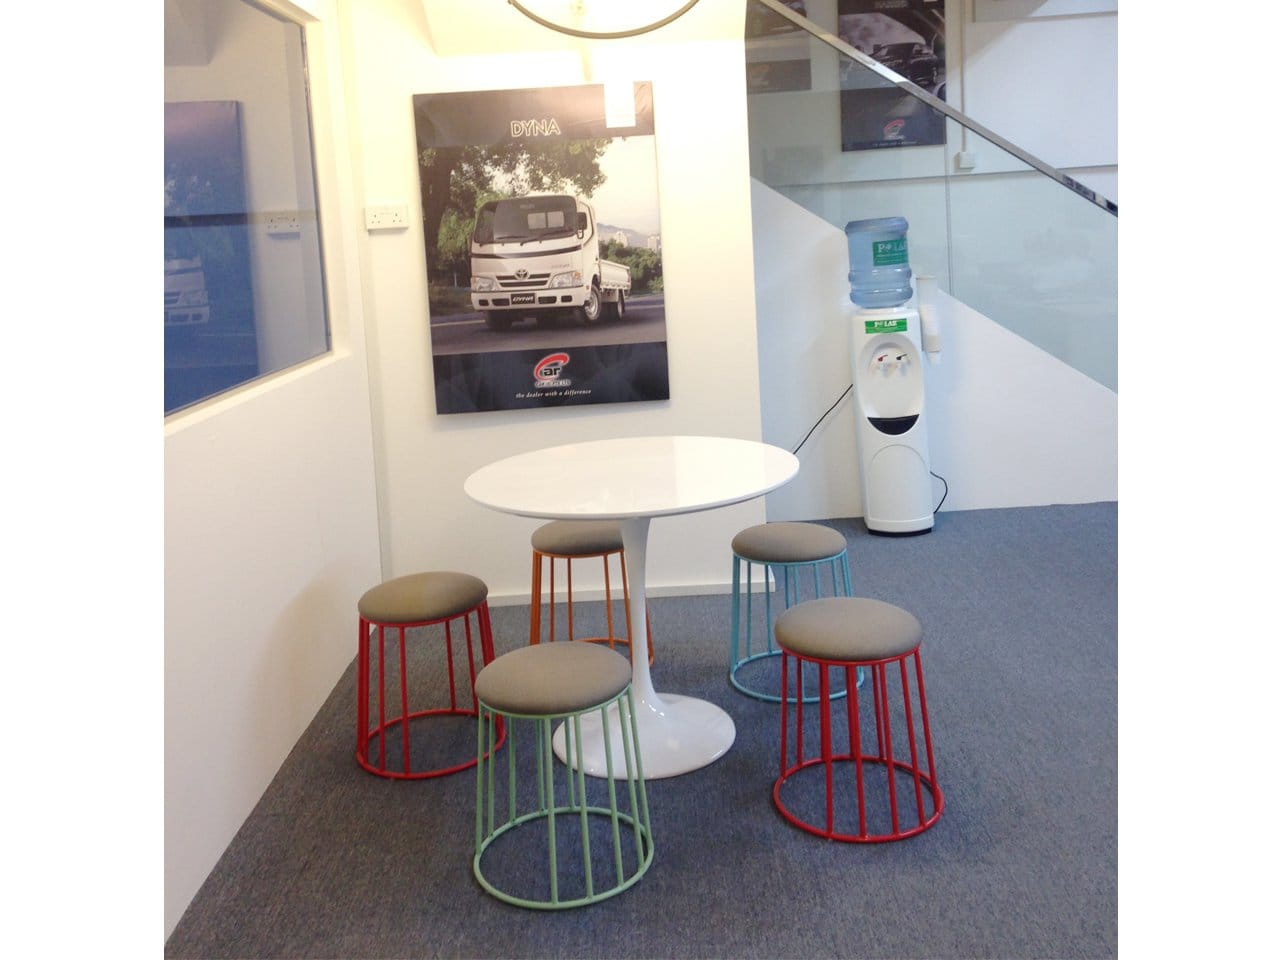 Car (S) Pte Ltd @ Loyang Enterprise Building | Products Seen: [Campus Stool & Megan Dining Table – Dia900]<br />